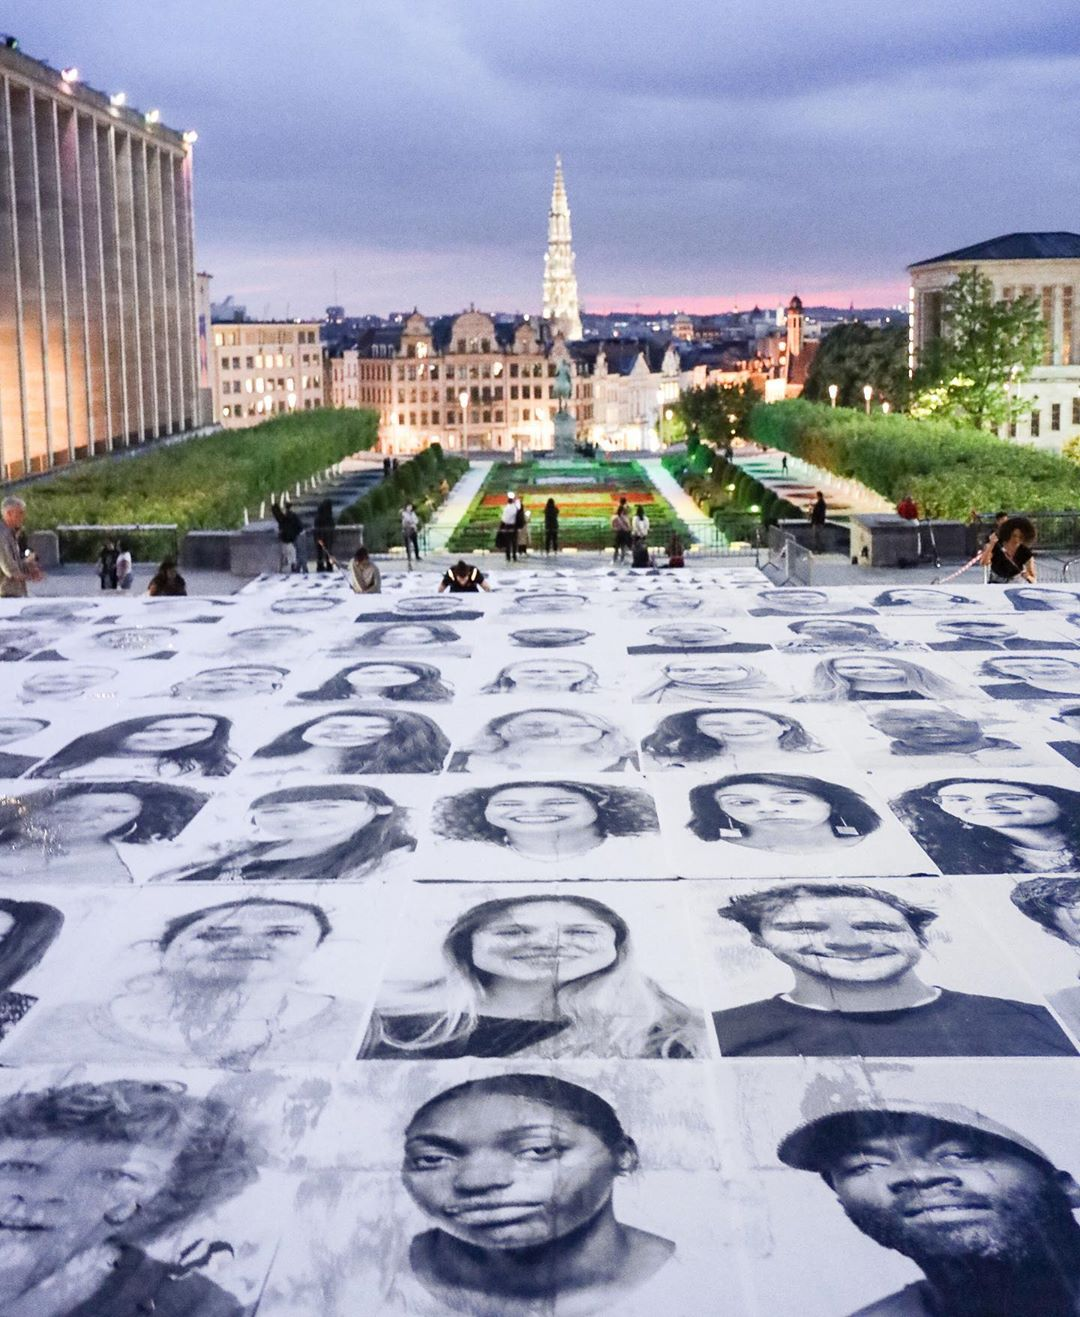 The Inside Out Project x 50 Shades of Racism, in Brussels, Belgium. Images courtesy of JR's Instagram